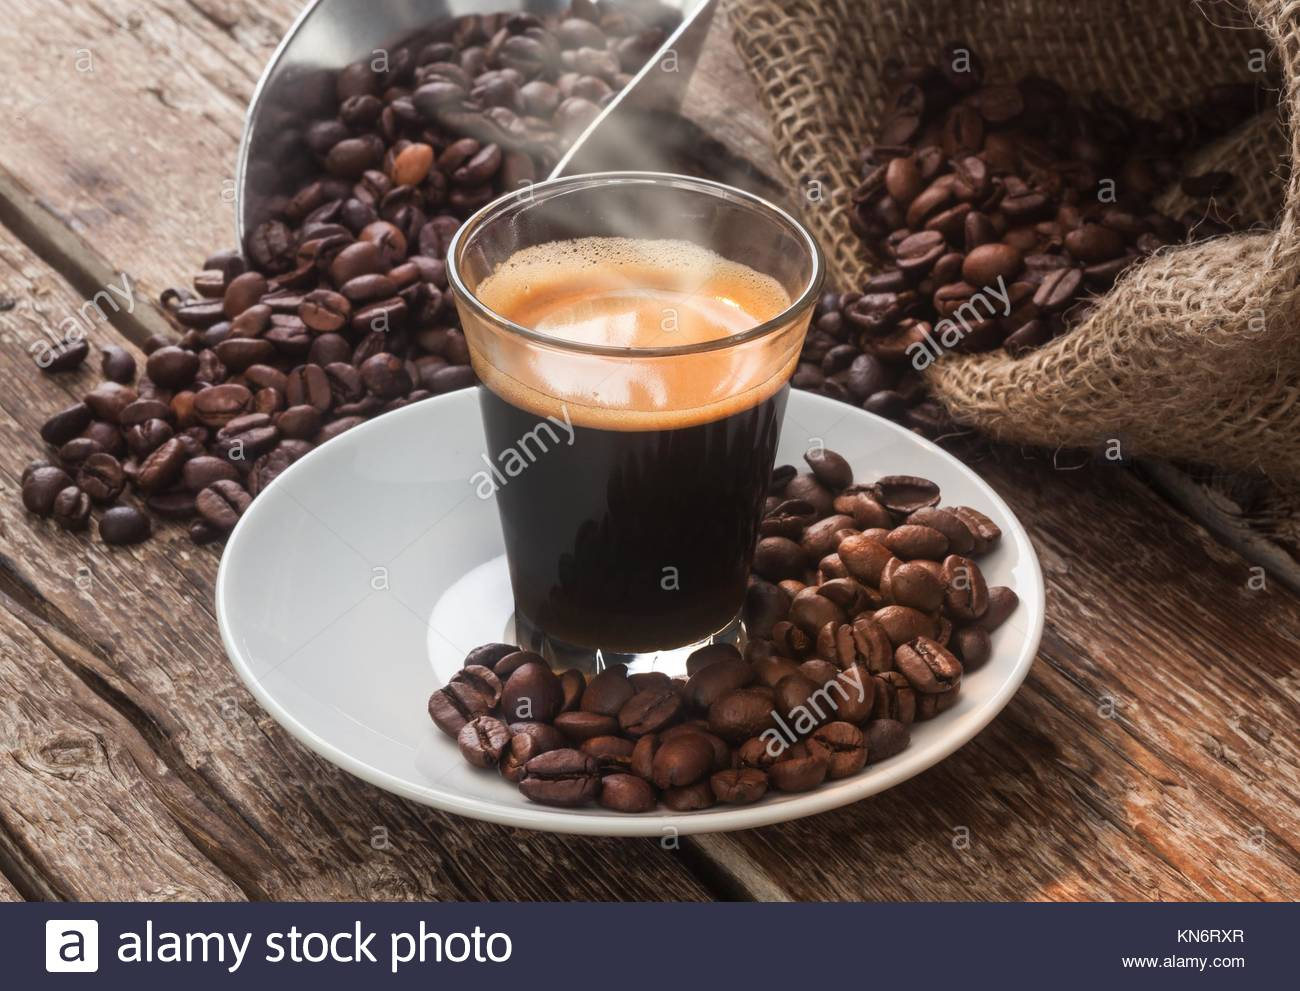 Espresso coffee in glass cup with coffee beans on wooden table. Stock Photo